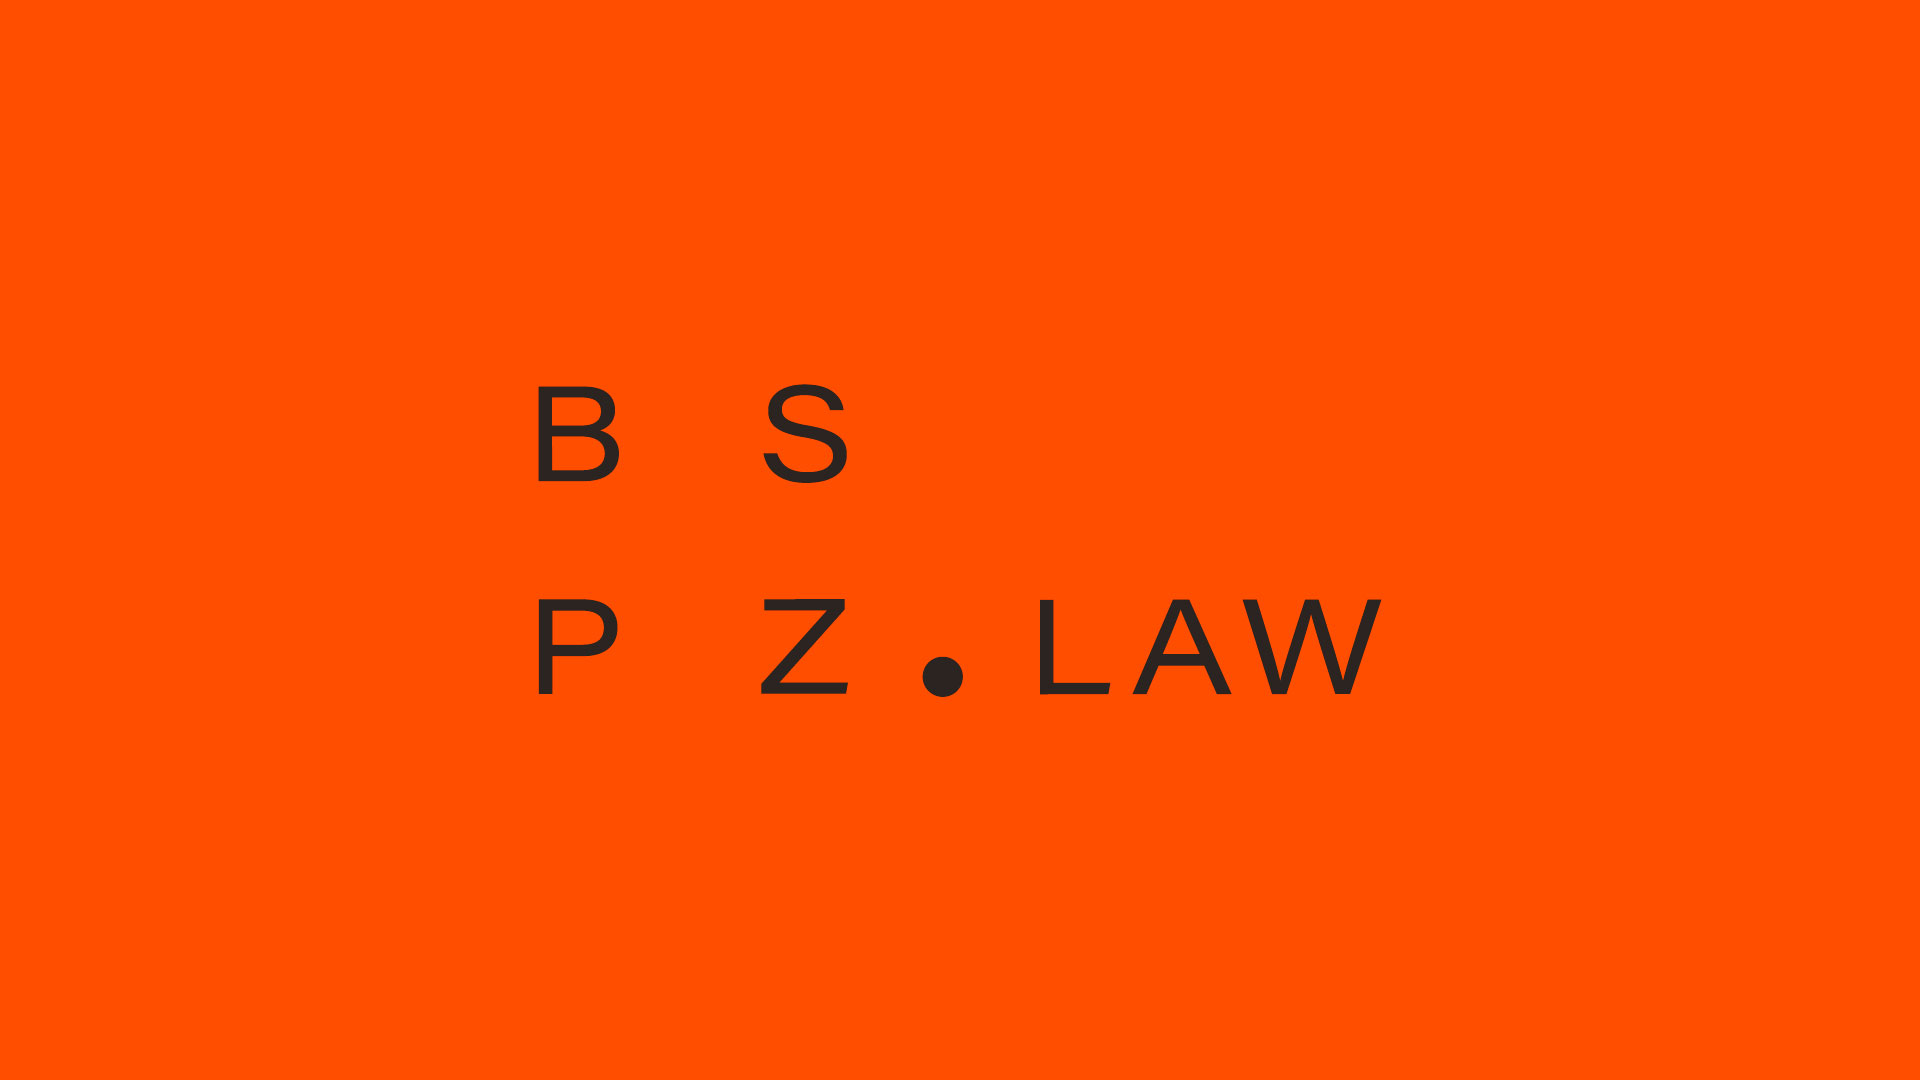 BSPZ.LAW